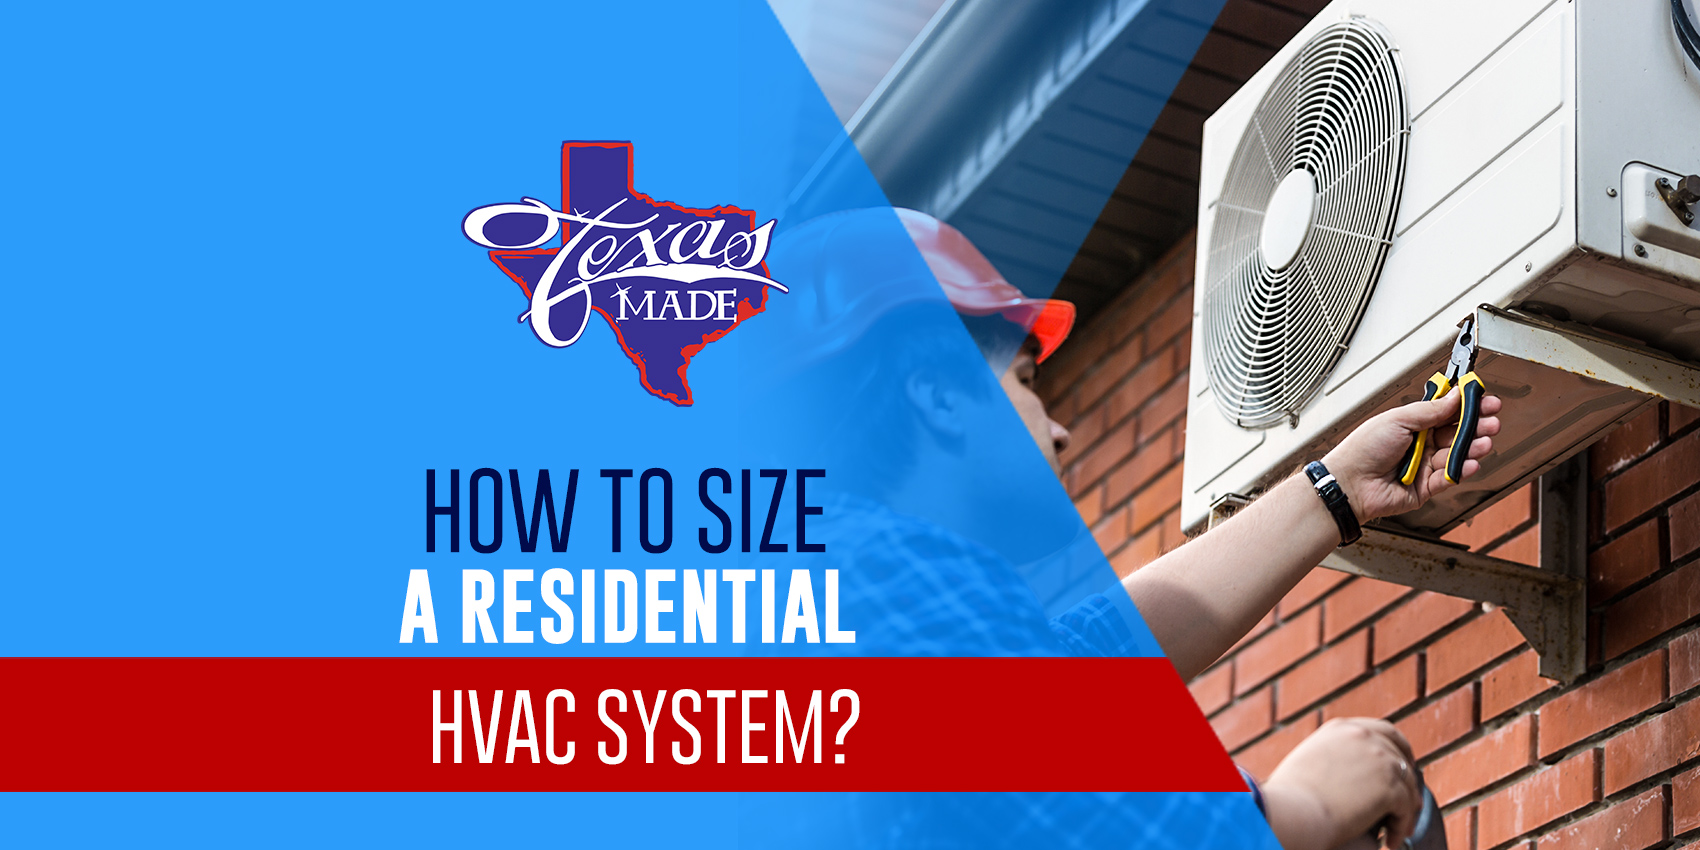 How to Size a Residential HVAC System?